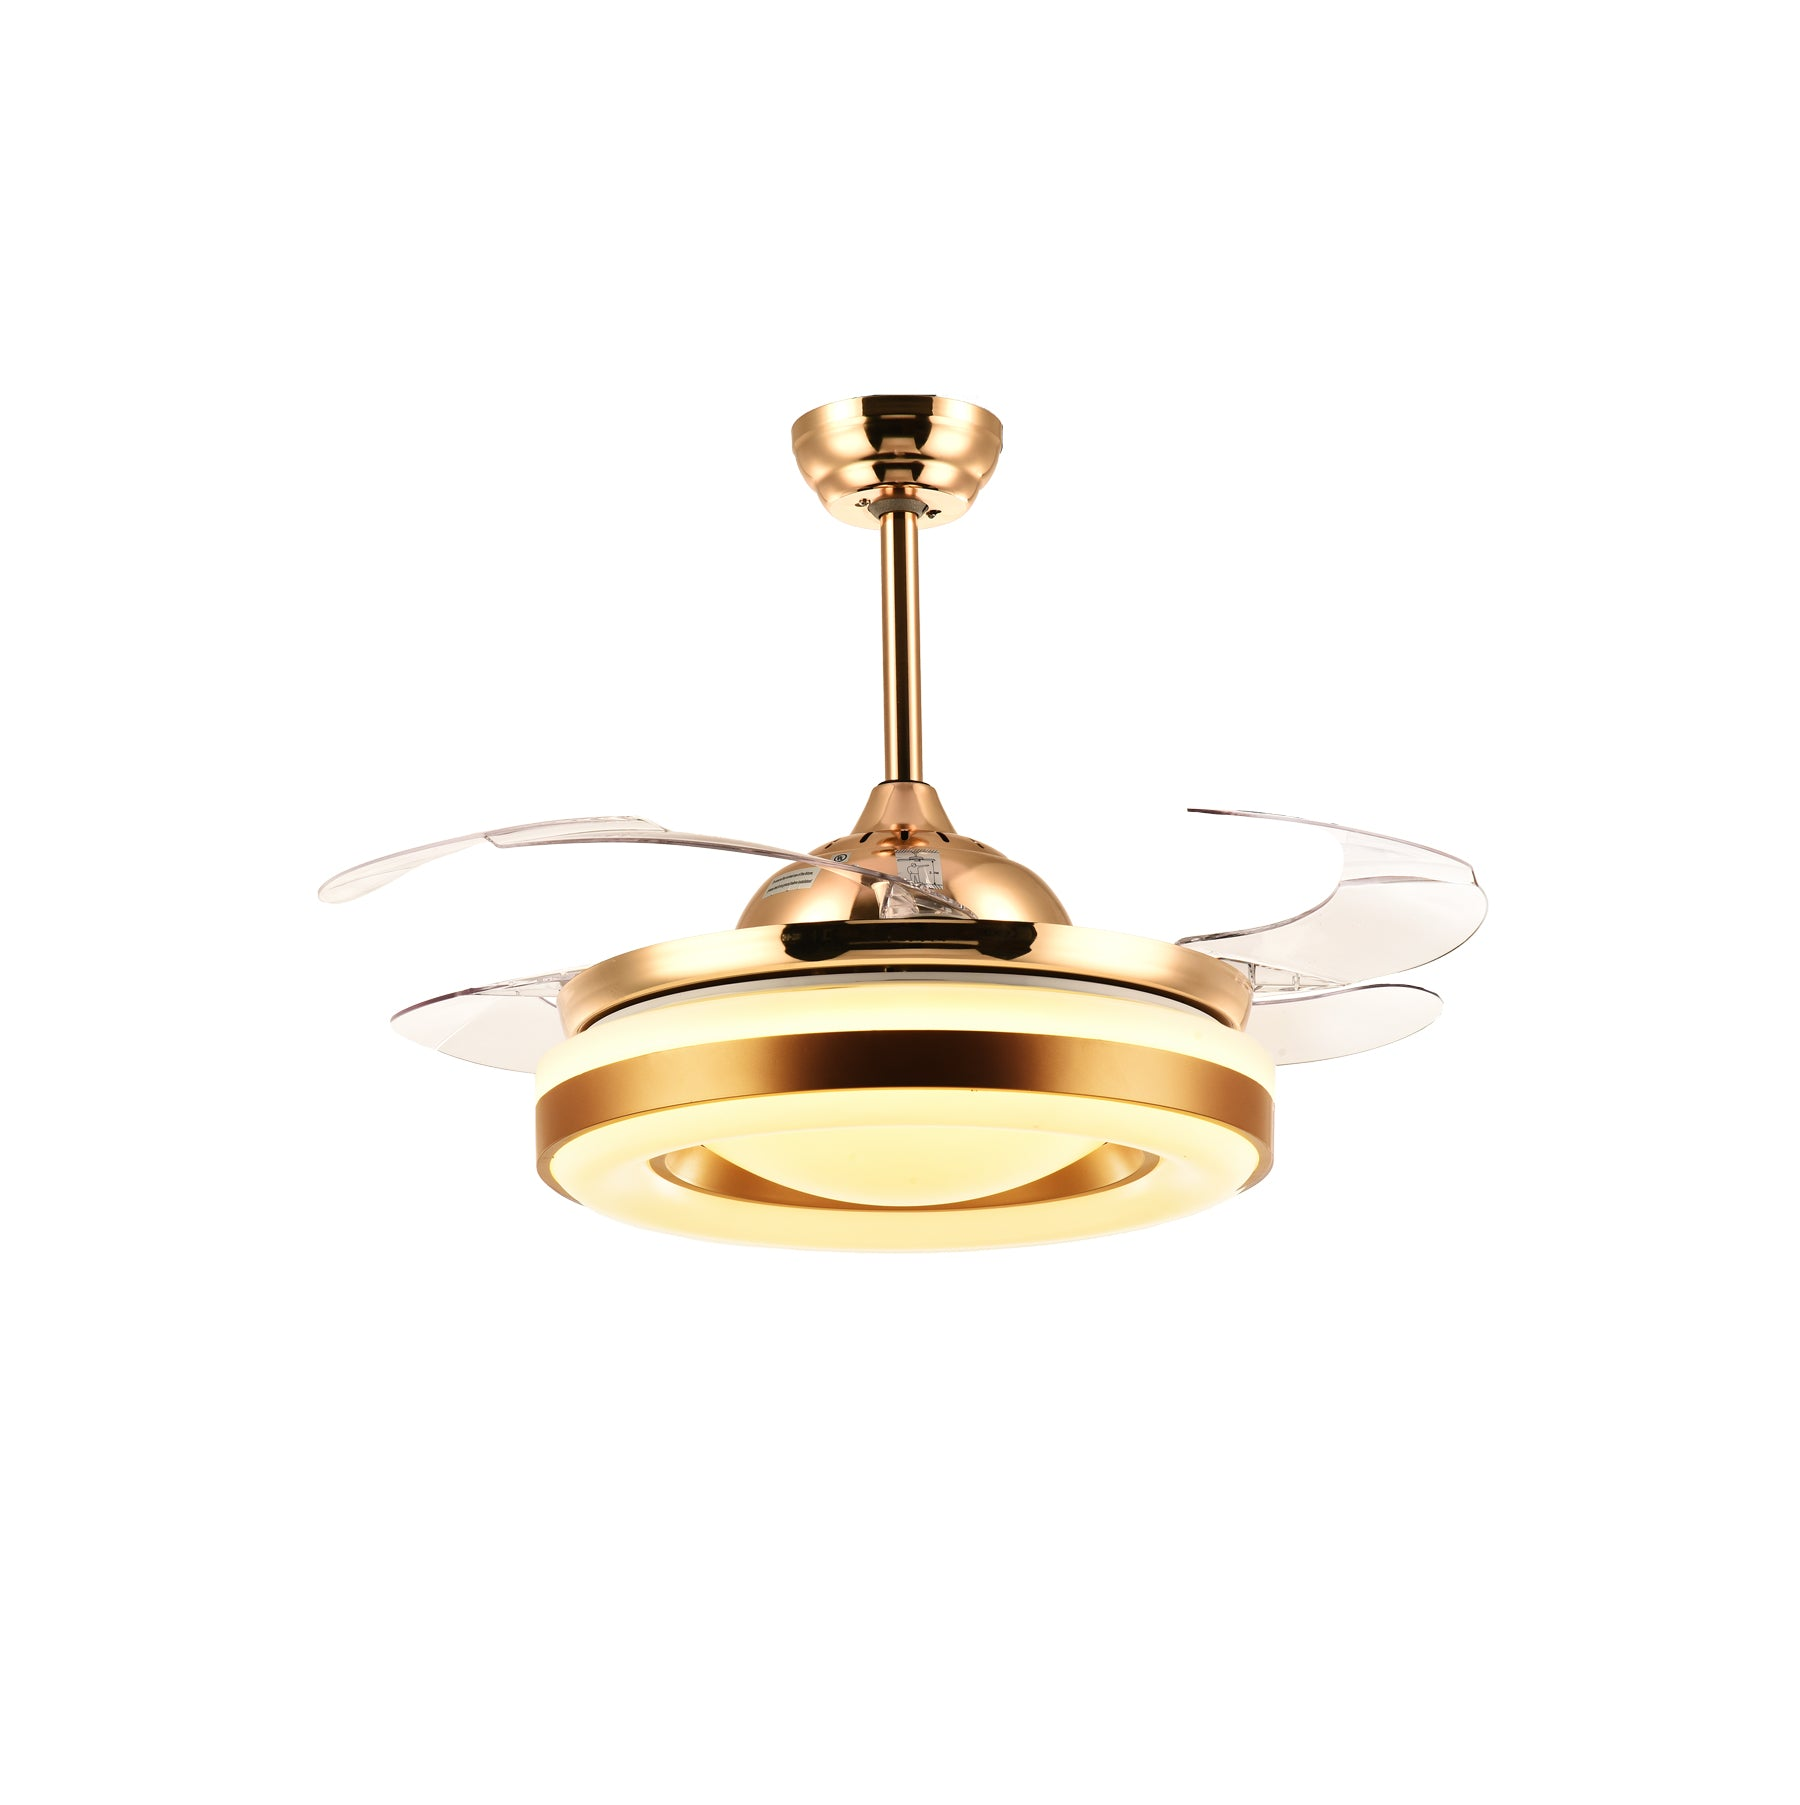 Ceiling Fan With Golden Lighting Design